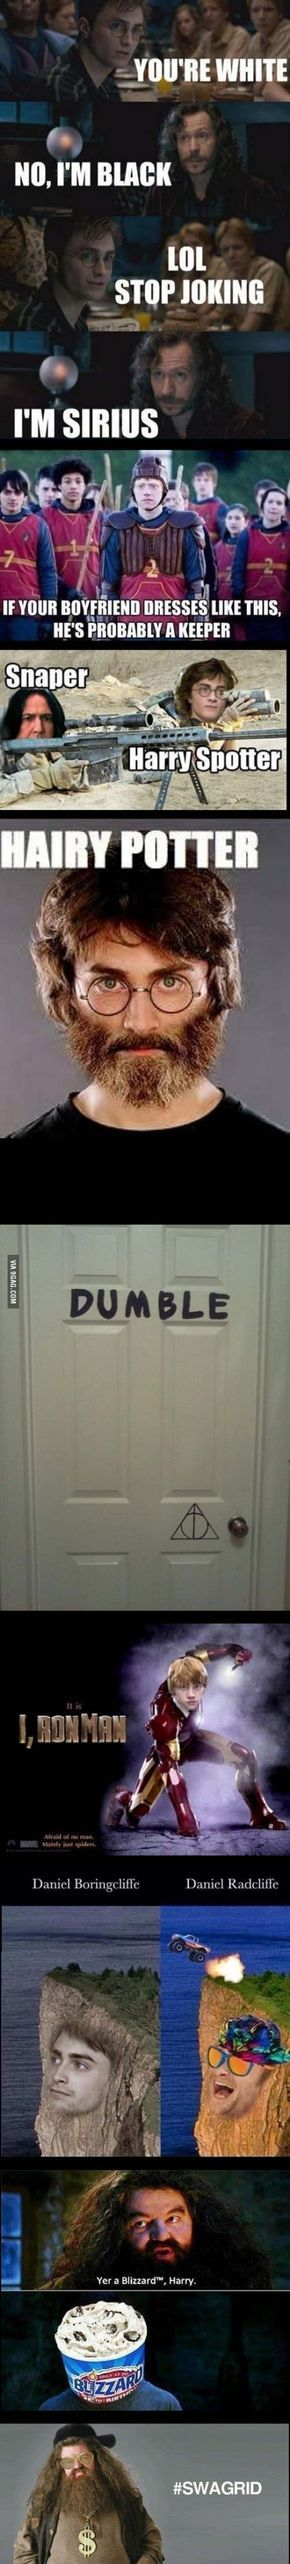 Harry Potter Puns and Memes So Dumb You'll Feel Bad For Laughing [Funny - Humor - 9gag]